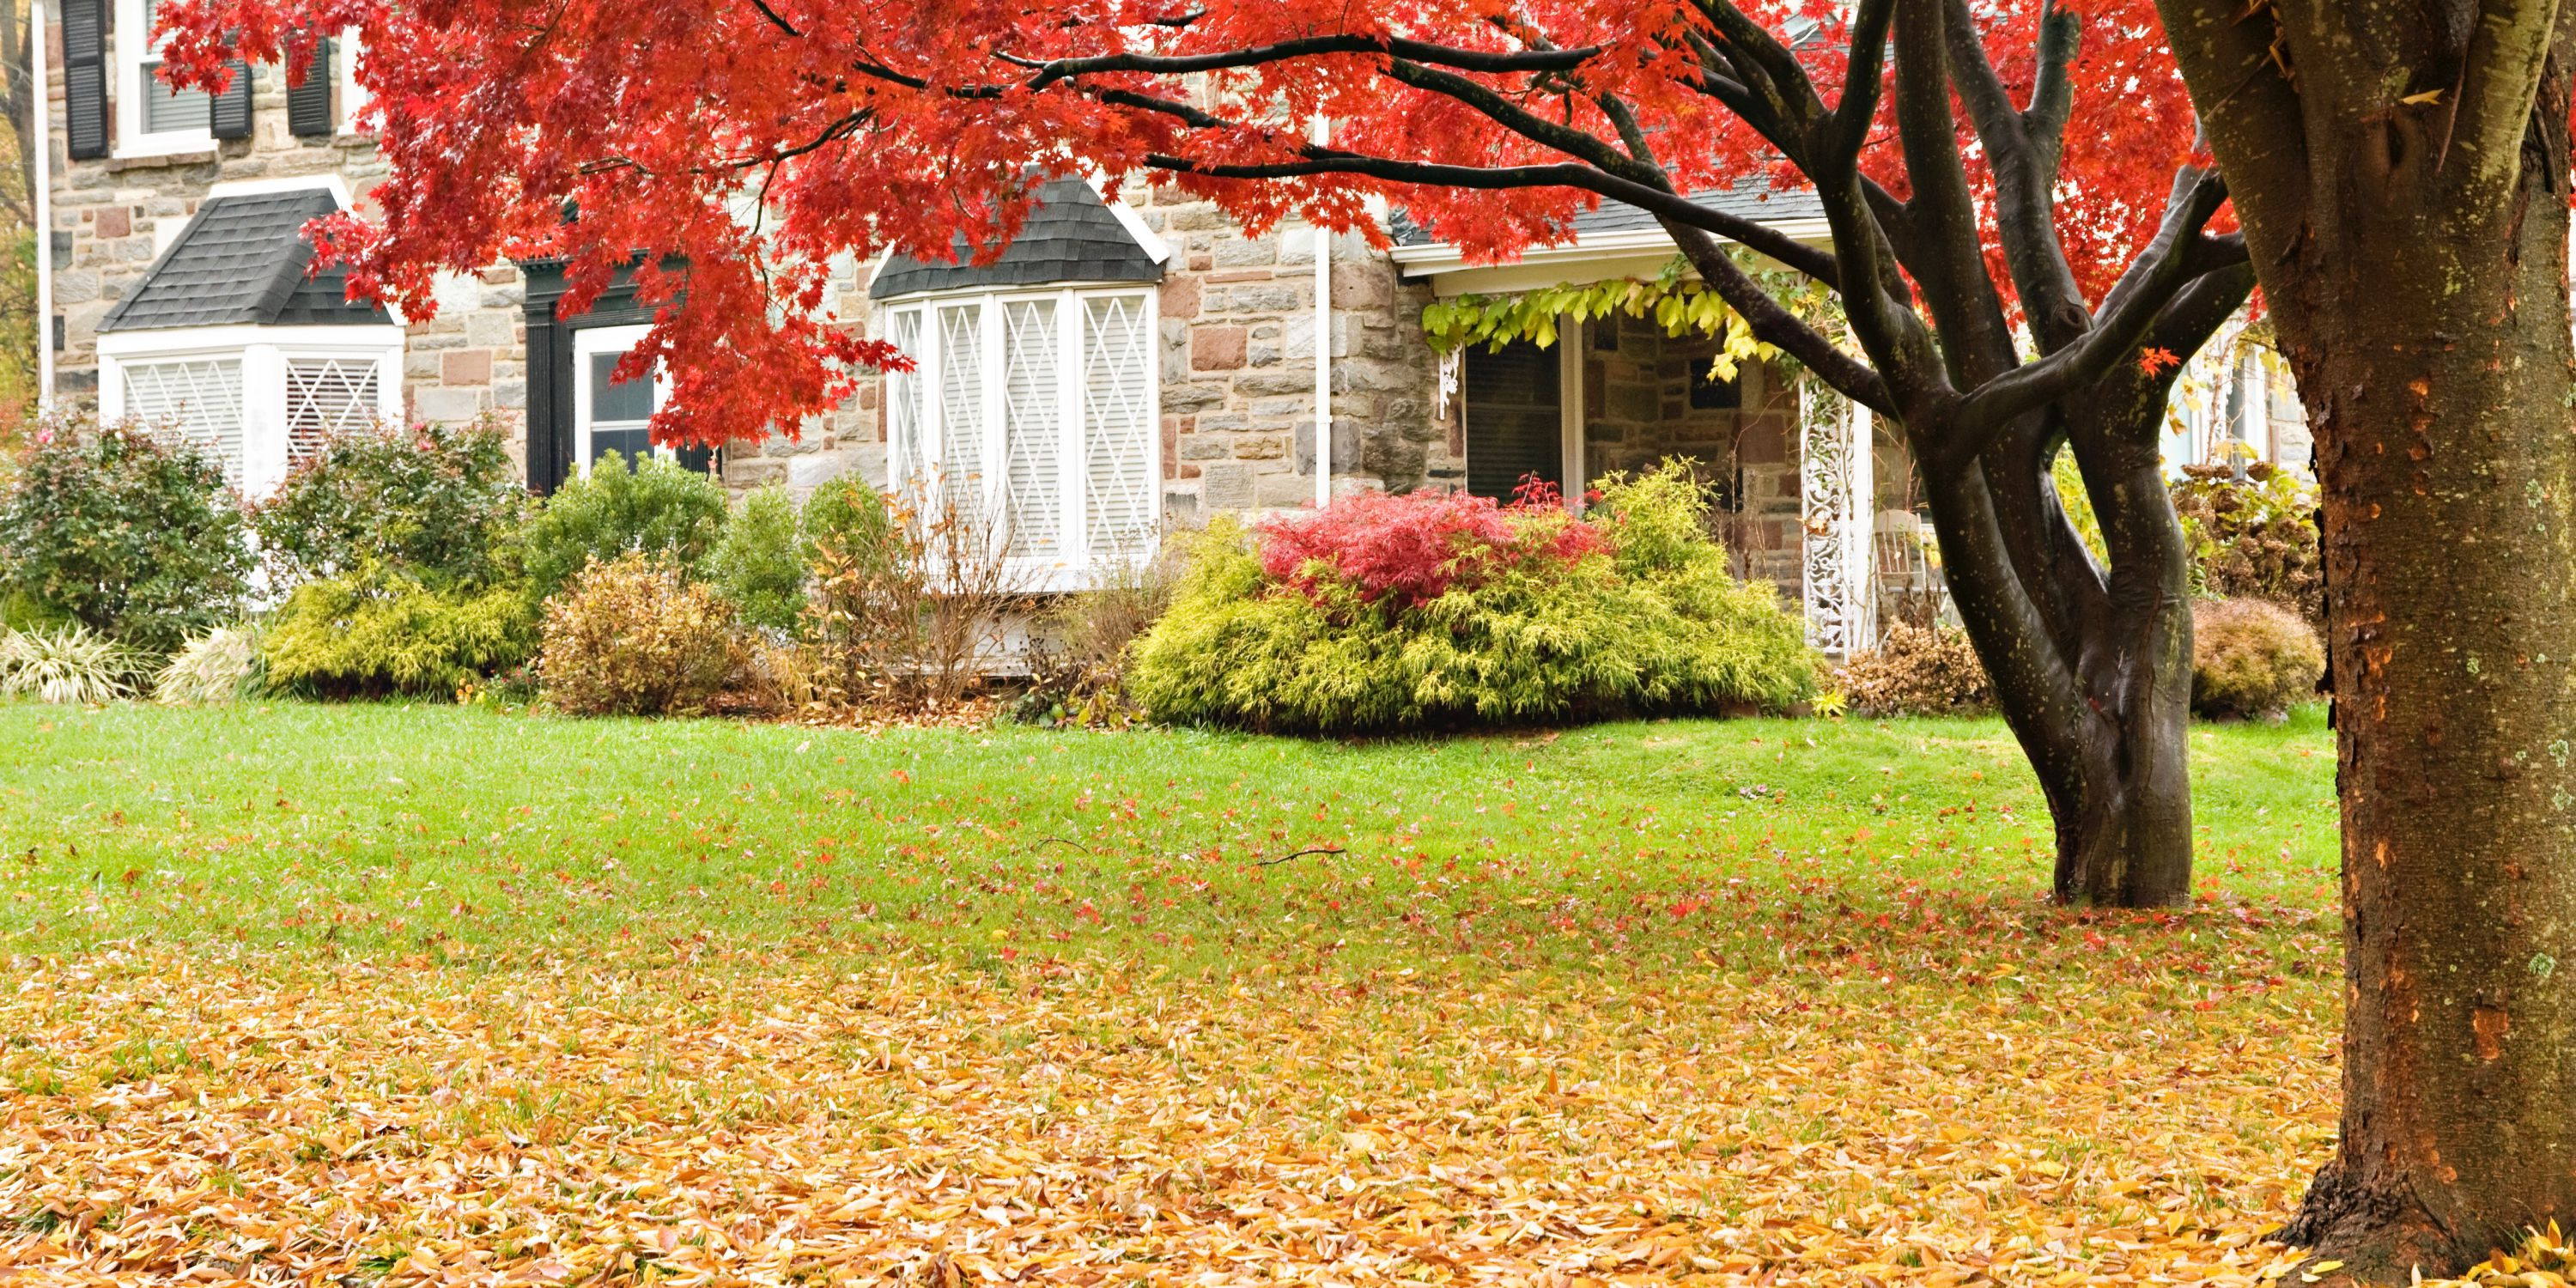 How to Maintain Home Security this Autumn